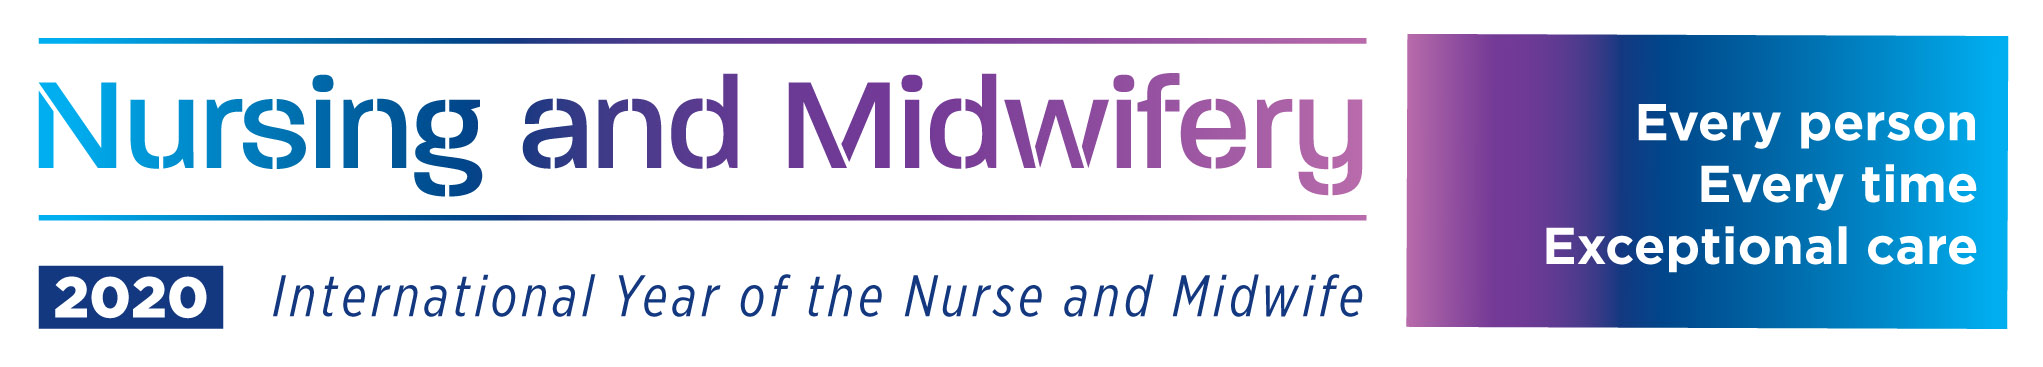 Nursing and Midwifery - International Year of the Nurse and the Midwife - Every person. Every time. Exceptional care.